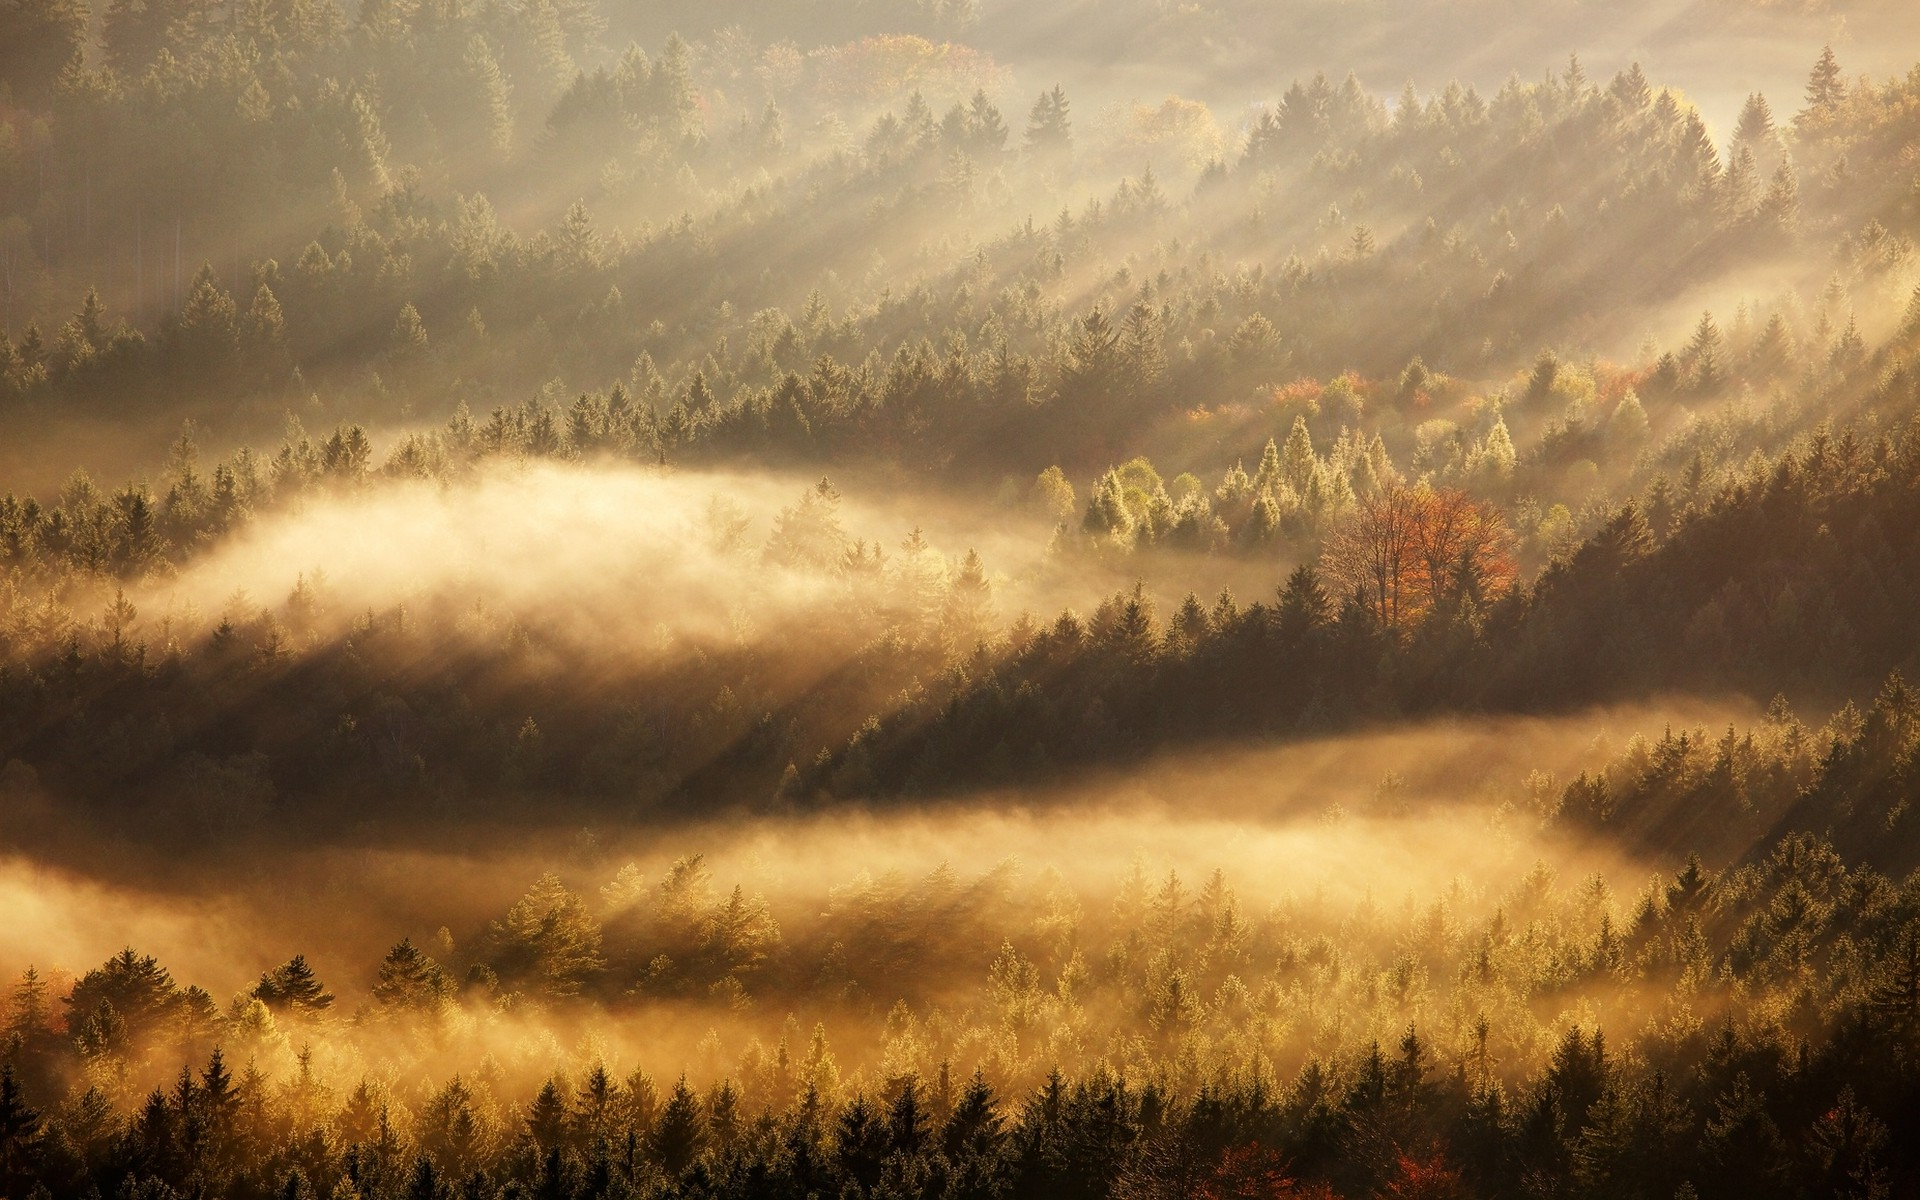 Fall In Love Wallpaper Download Nature Landscape Mist Sunrise Fall Forest Sun Rays